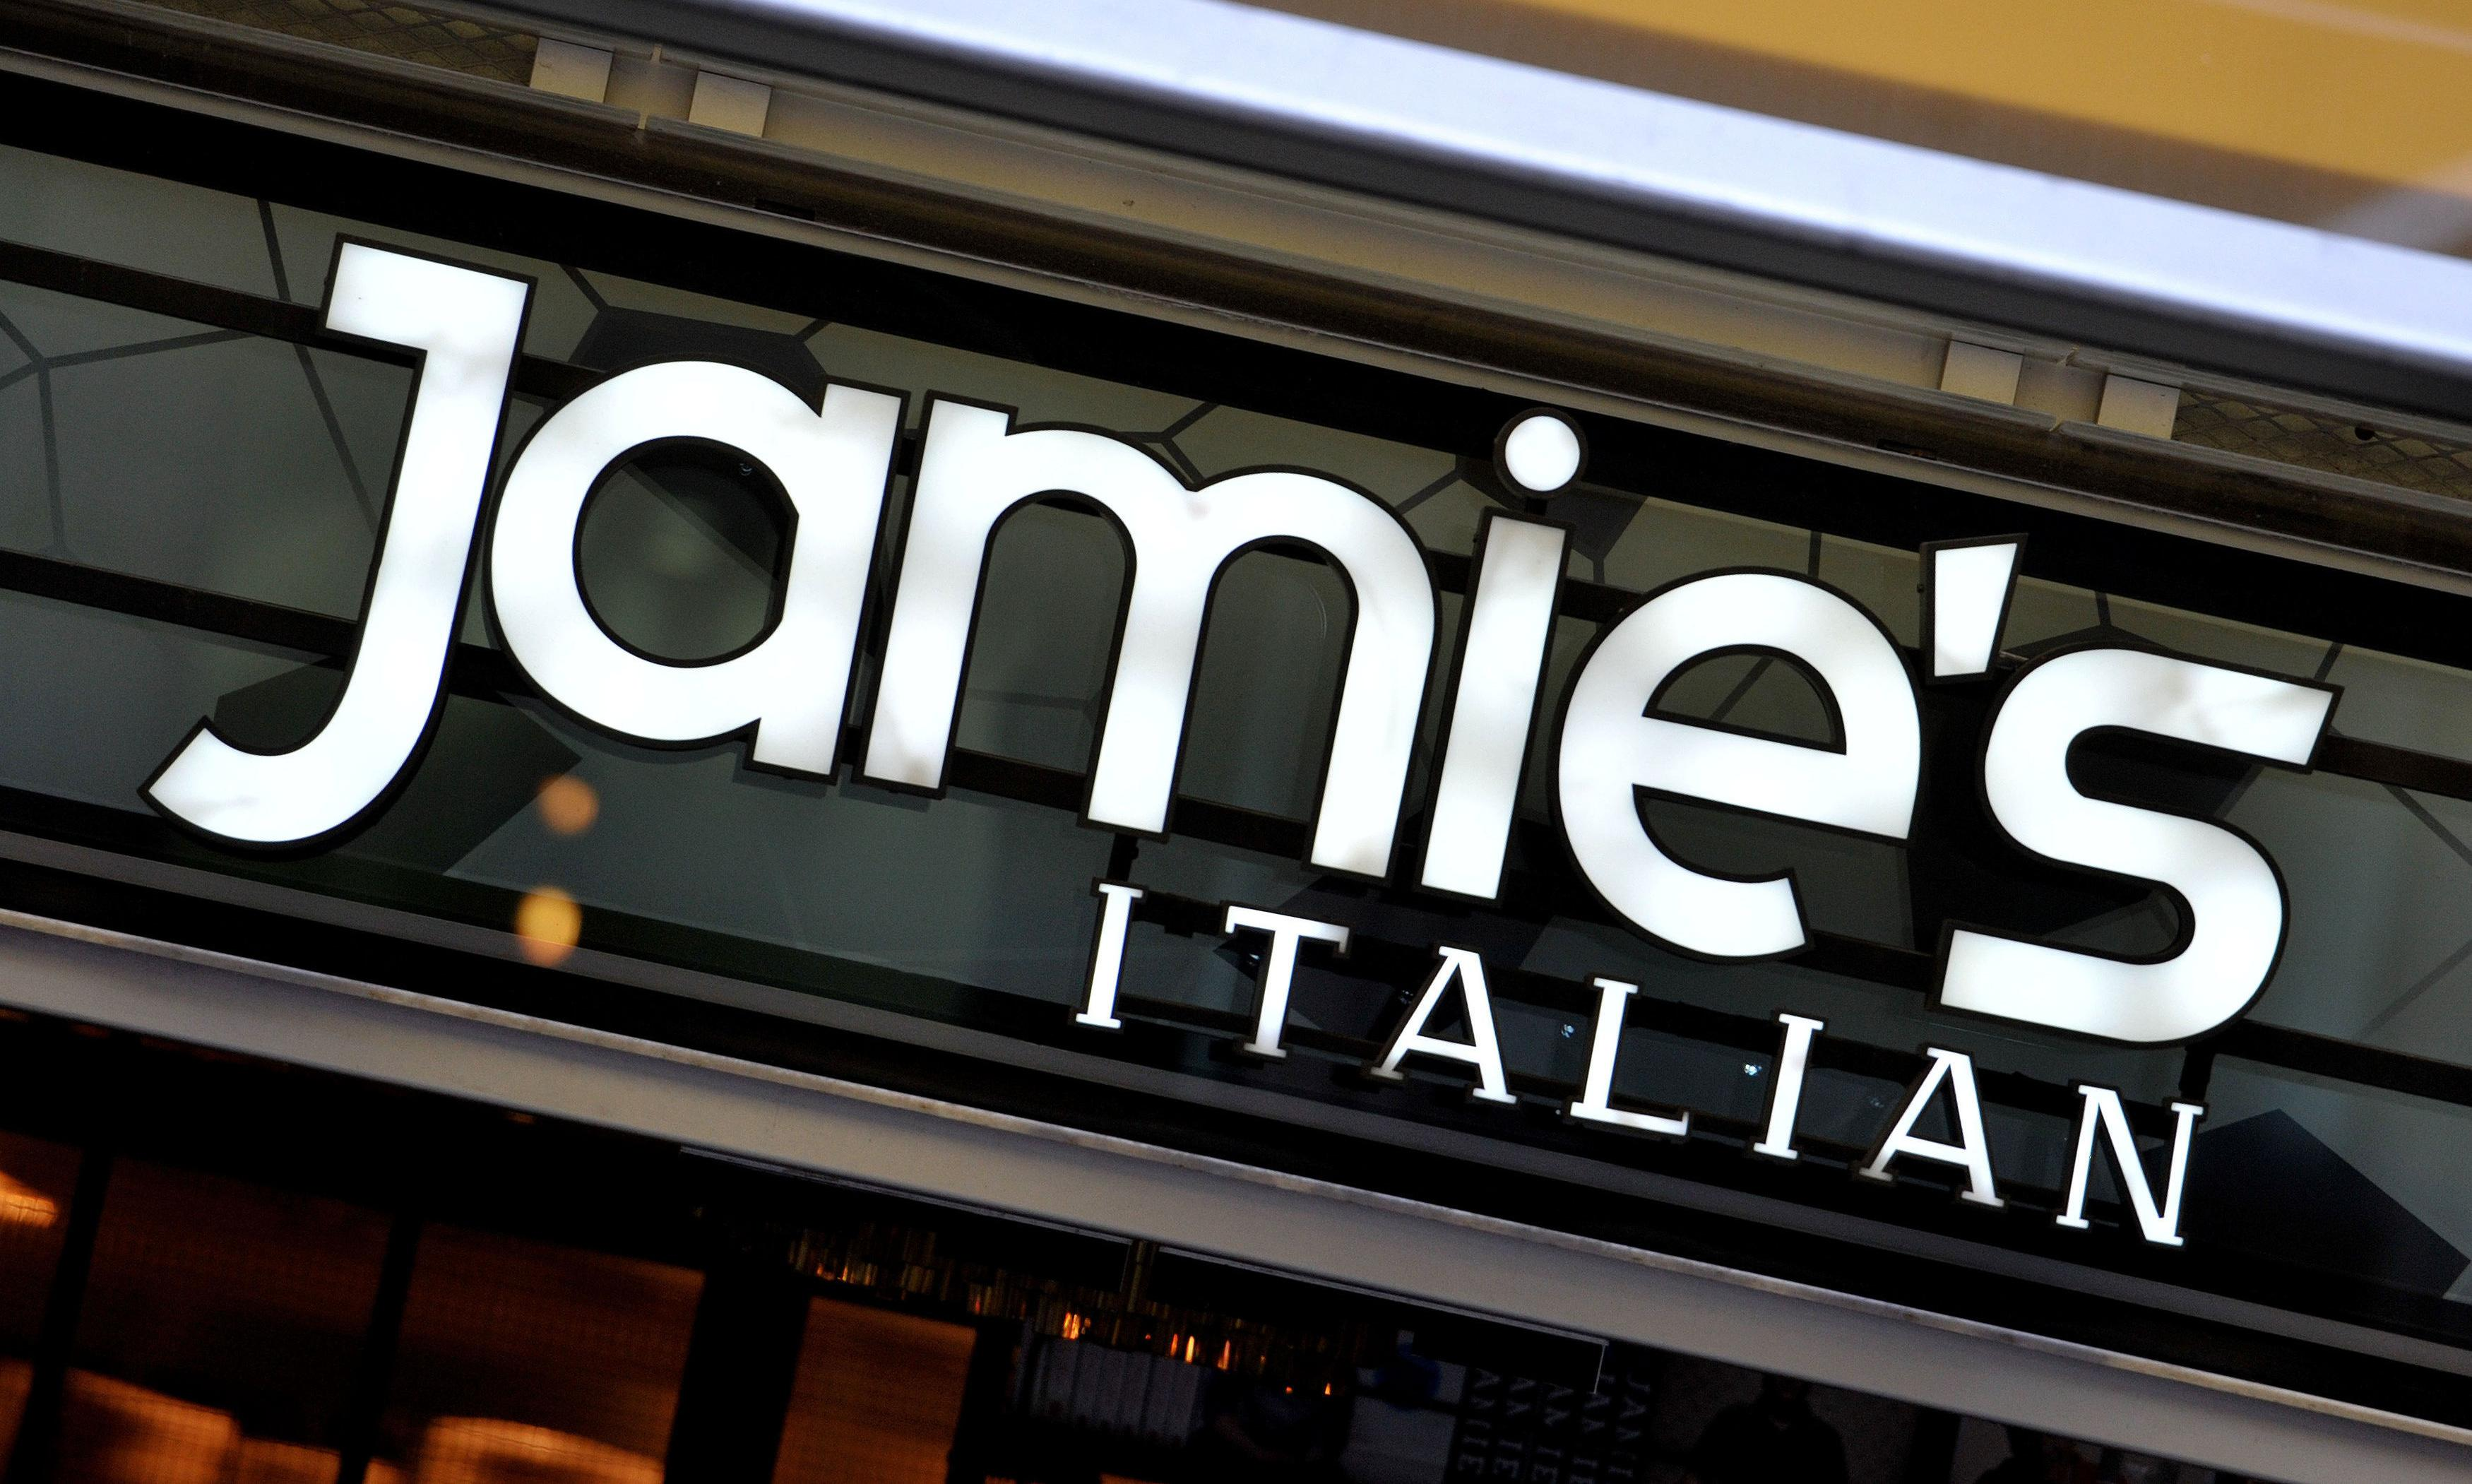 Jamie Oliver restaurants that have closed – the full list